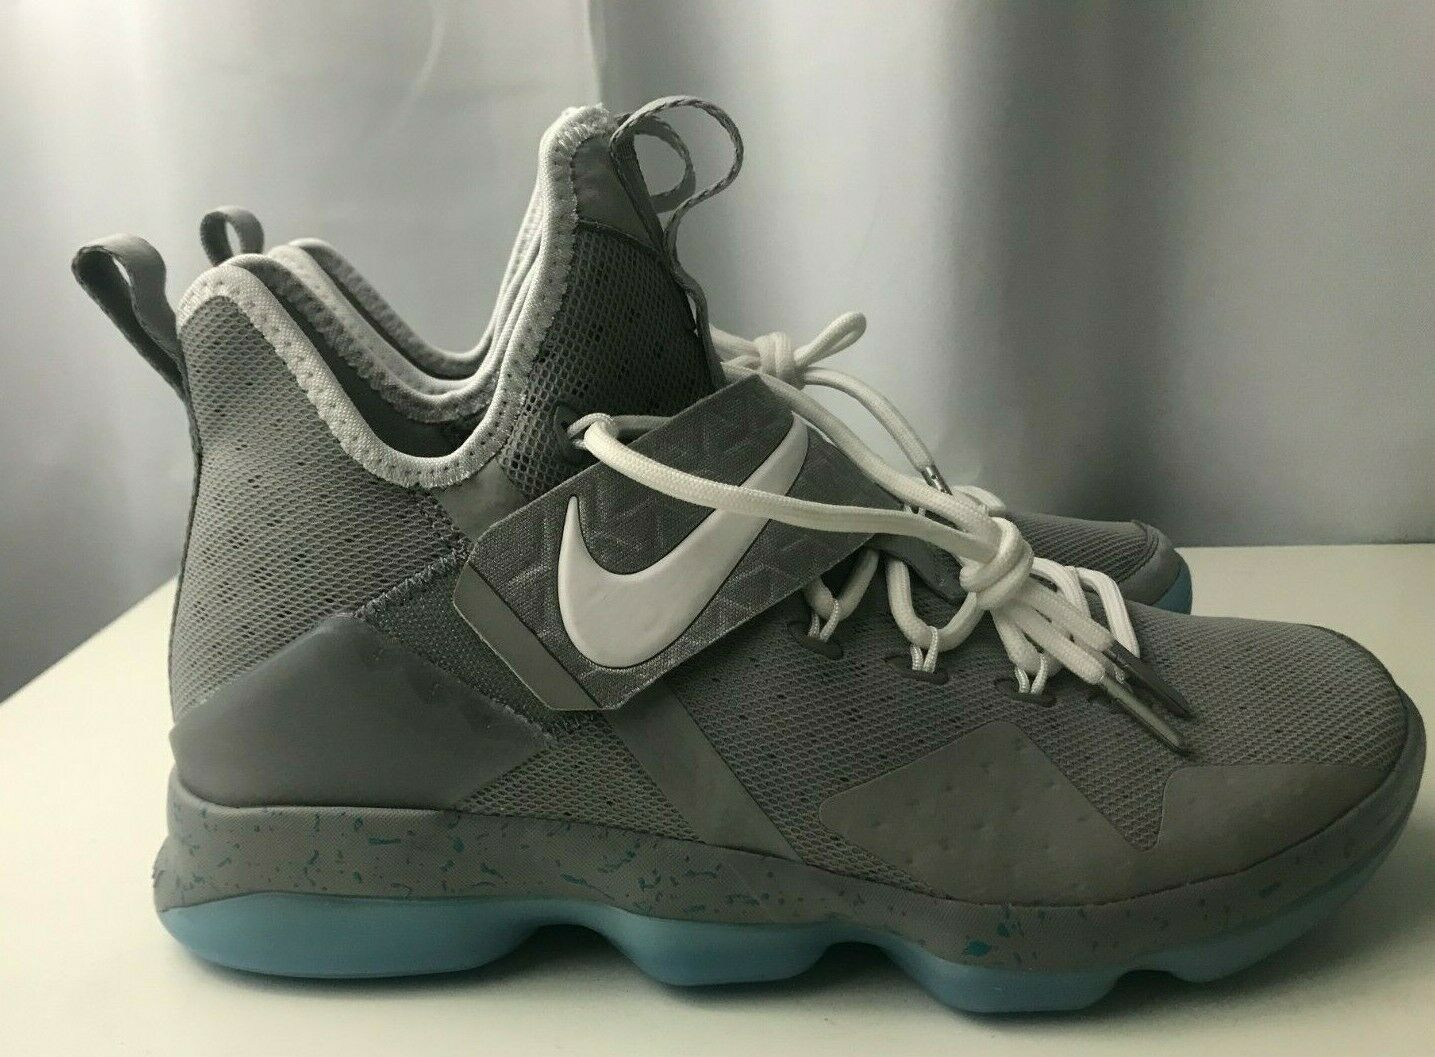 Nike LeBron 14 XIV Mag McFly Basketball shoes Men's 9.5 Grey Sneakers 852405-005